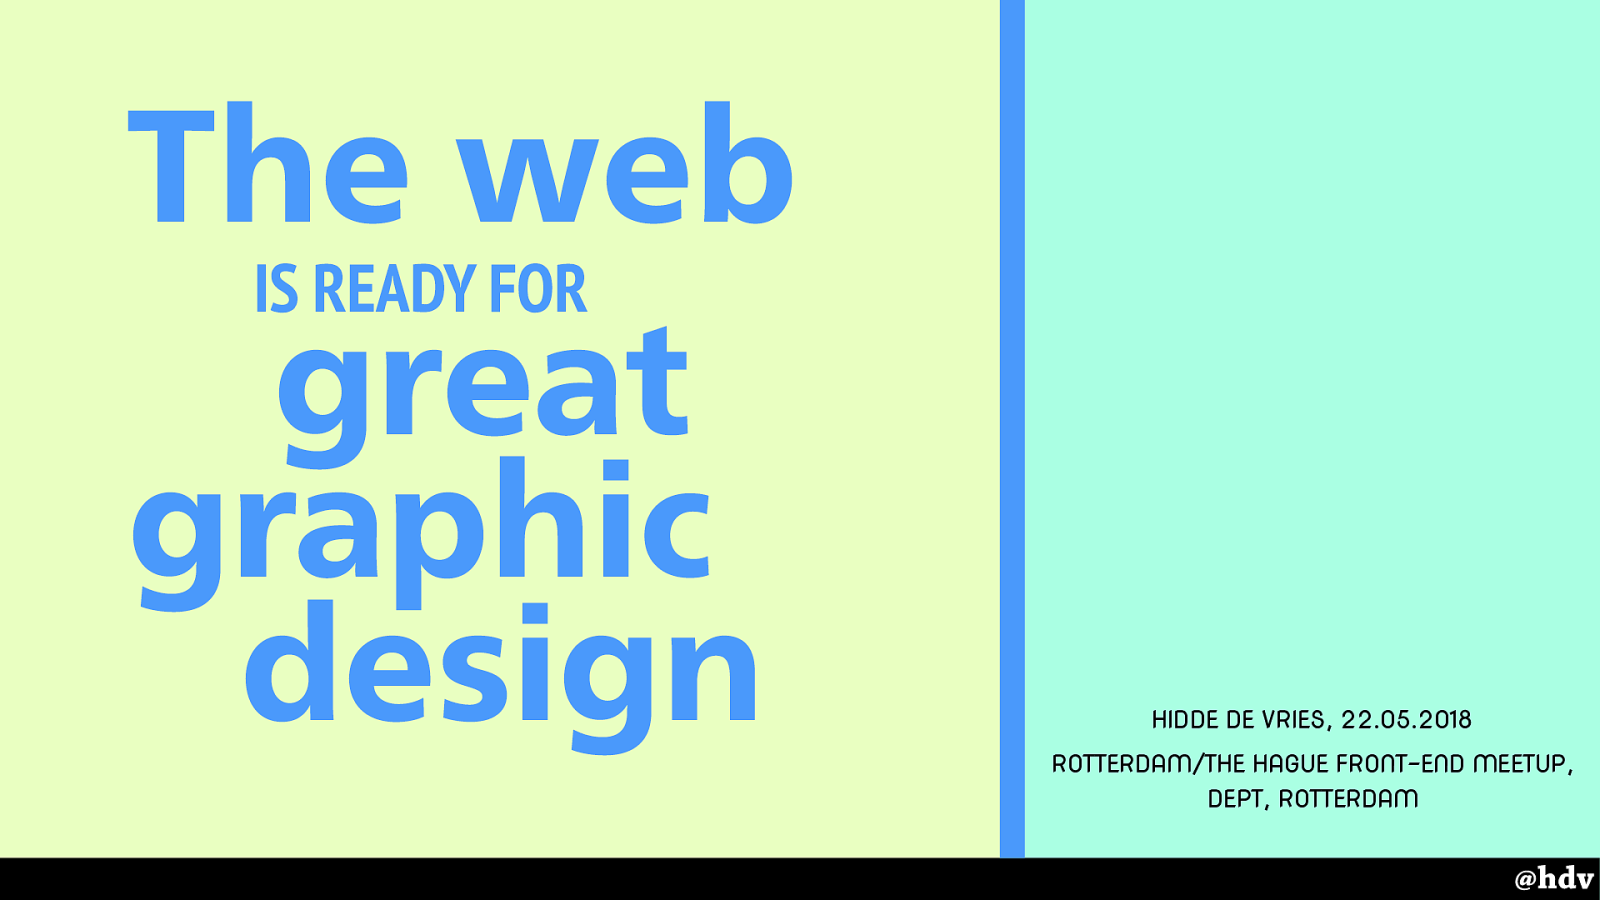 The web is ready for great graphic design